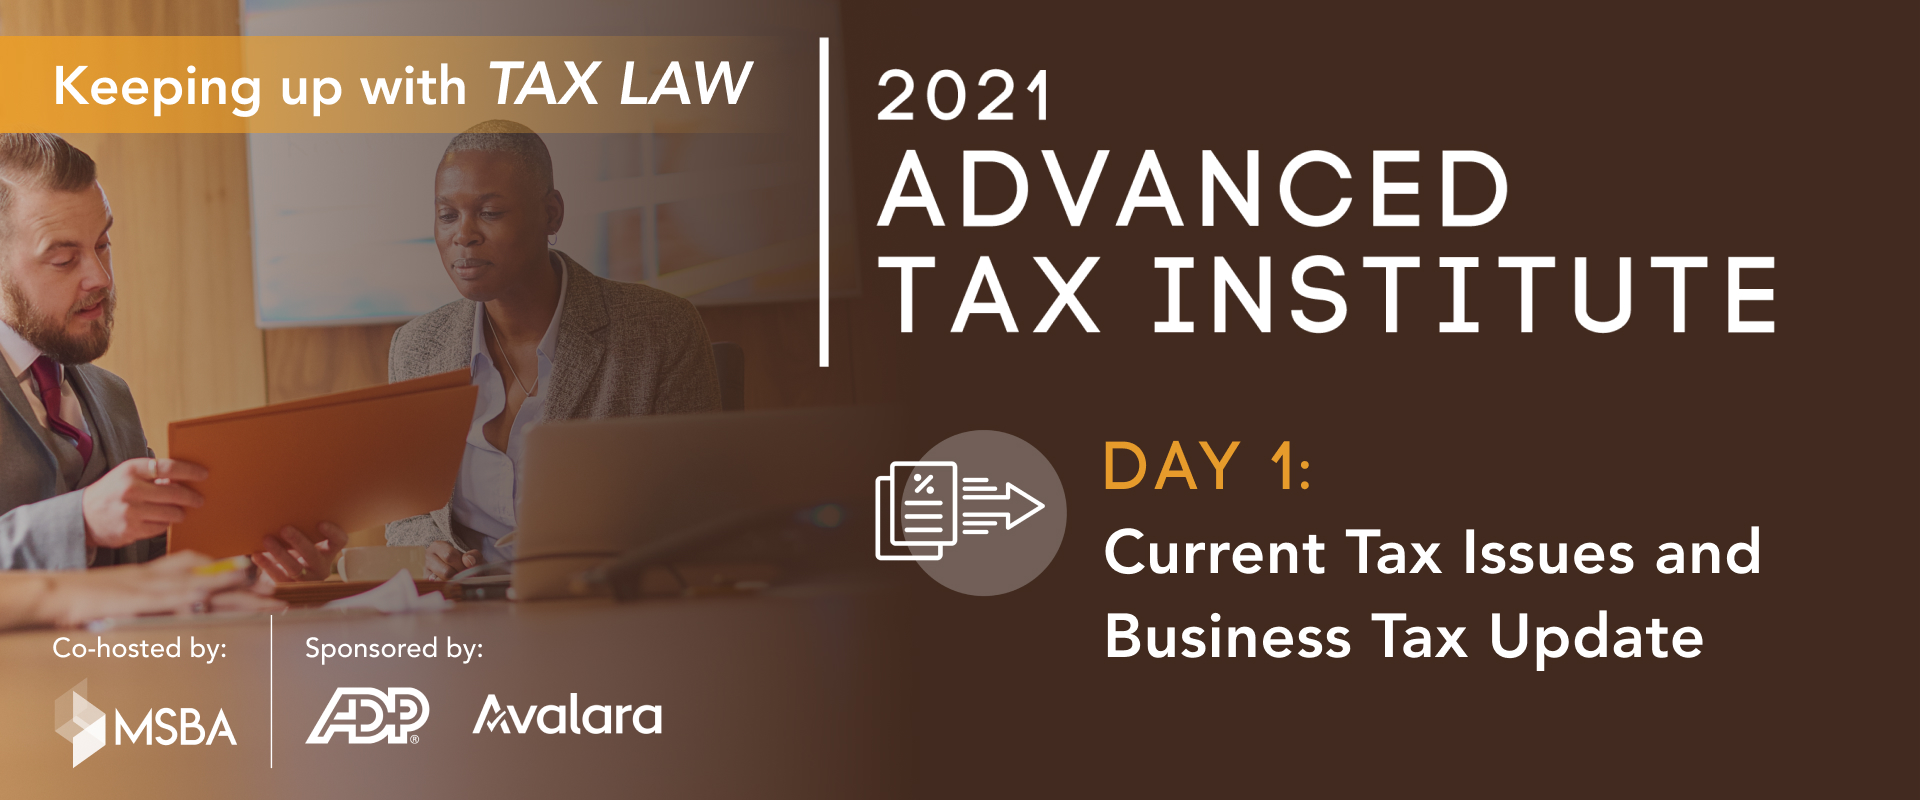 2021 ADVANCED TAX INSTITUTE DAY 1 CURRENT TAX ISSUES AND BUSINESS TAX UPDATE